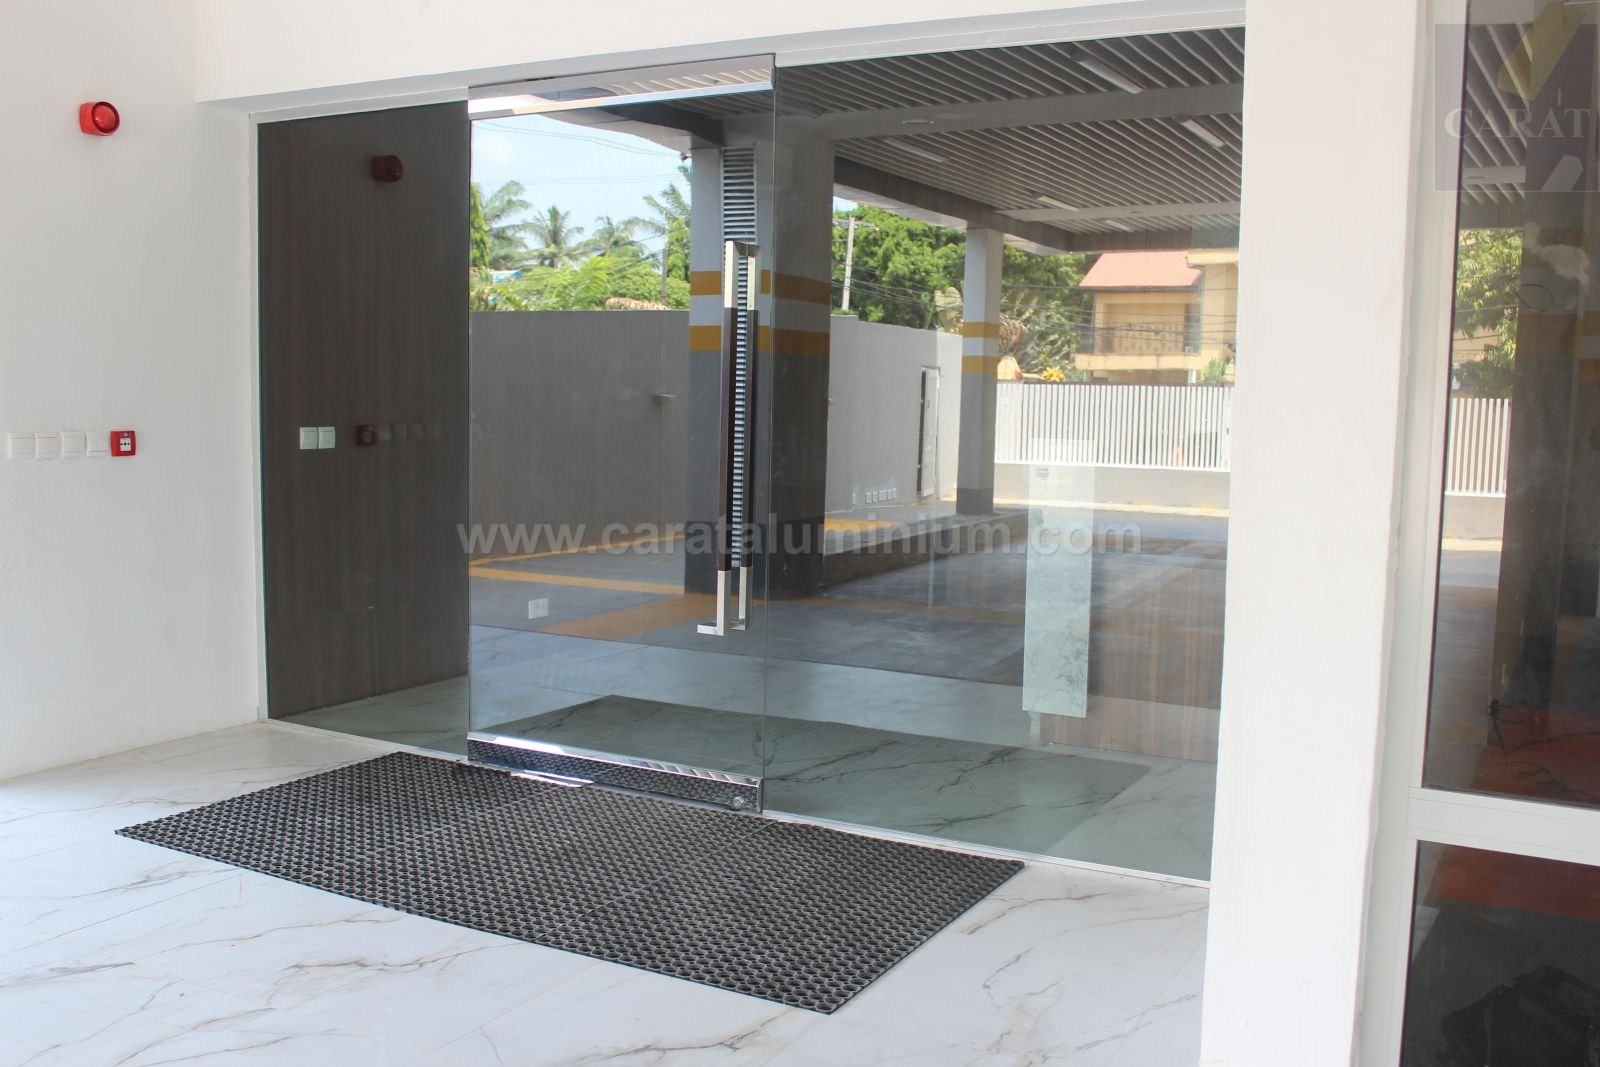 Frameless Glass Doors And Partitions Carat Aluminium